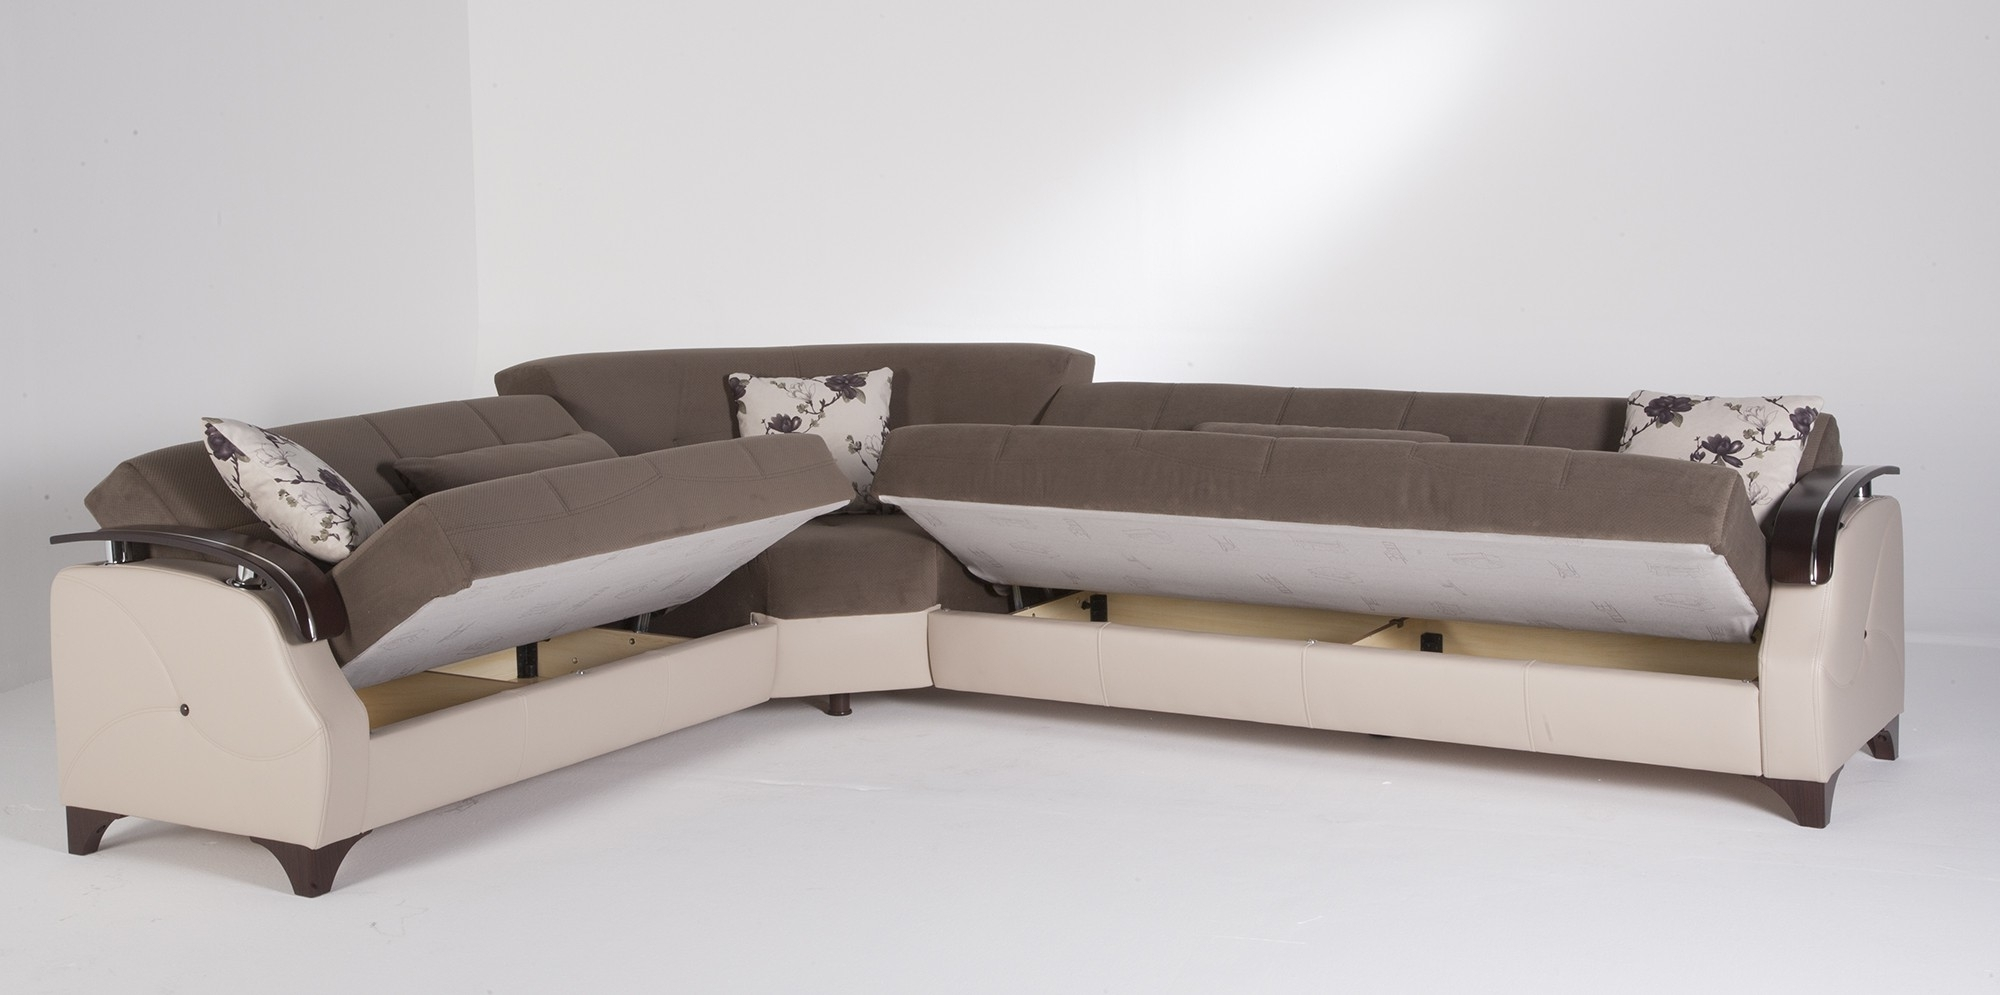 Most Current Sectional Sofas In Stock Throughout Sectional Sofa Design: Cheap Sectional Sofas Furniture Design (View 5 of 20)